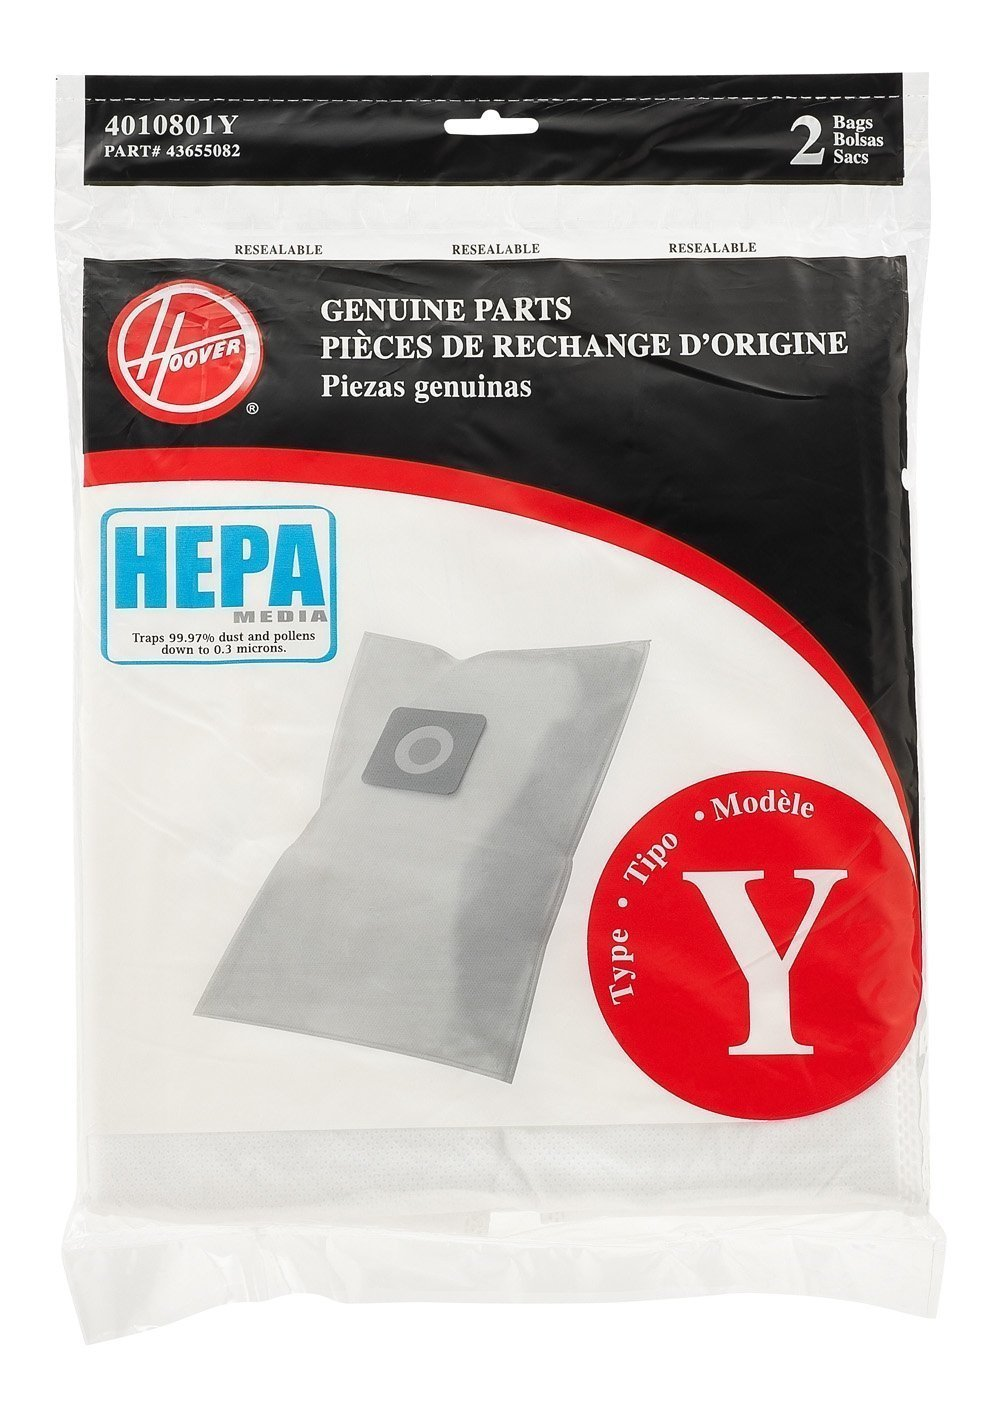 Hoover Type Y HEPA Filter Bag, Set of 6 bags